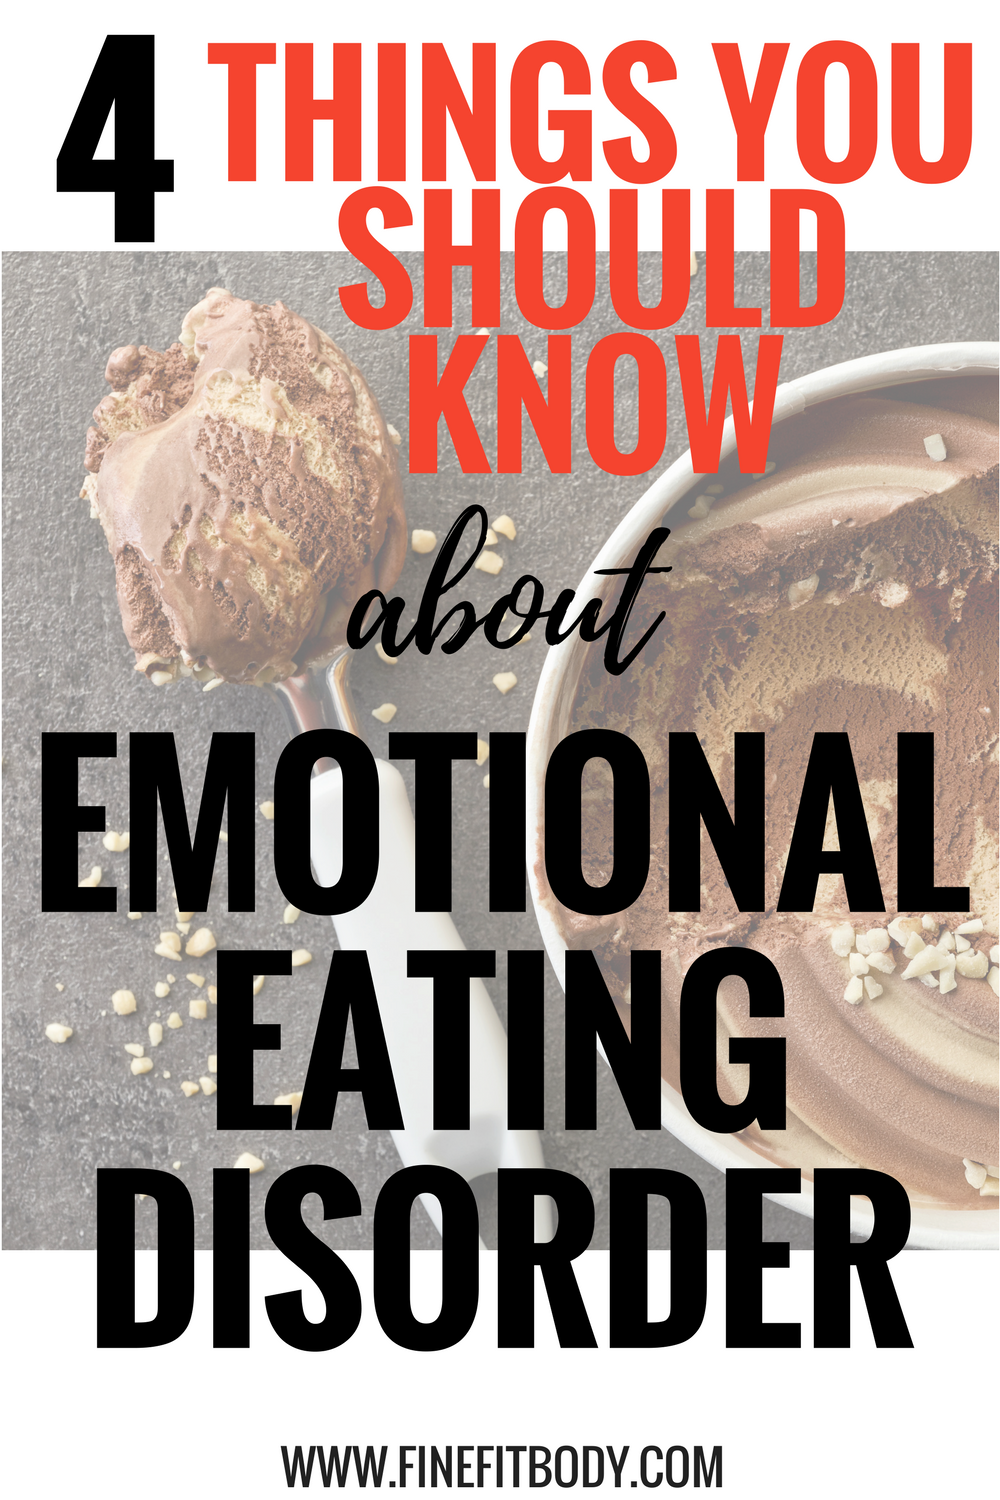 I didn't know all of this about emotional eating disorder! This is going to help me stop emotional eating. Pinning for later.